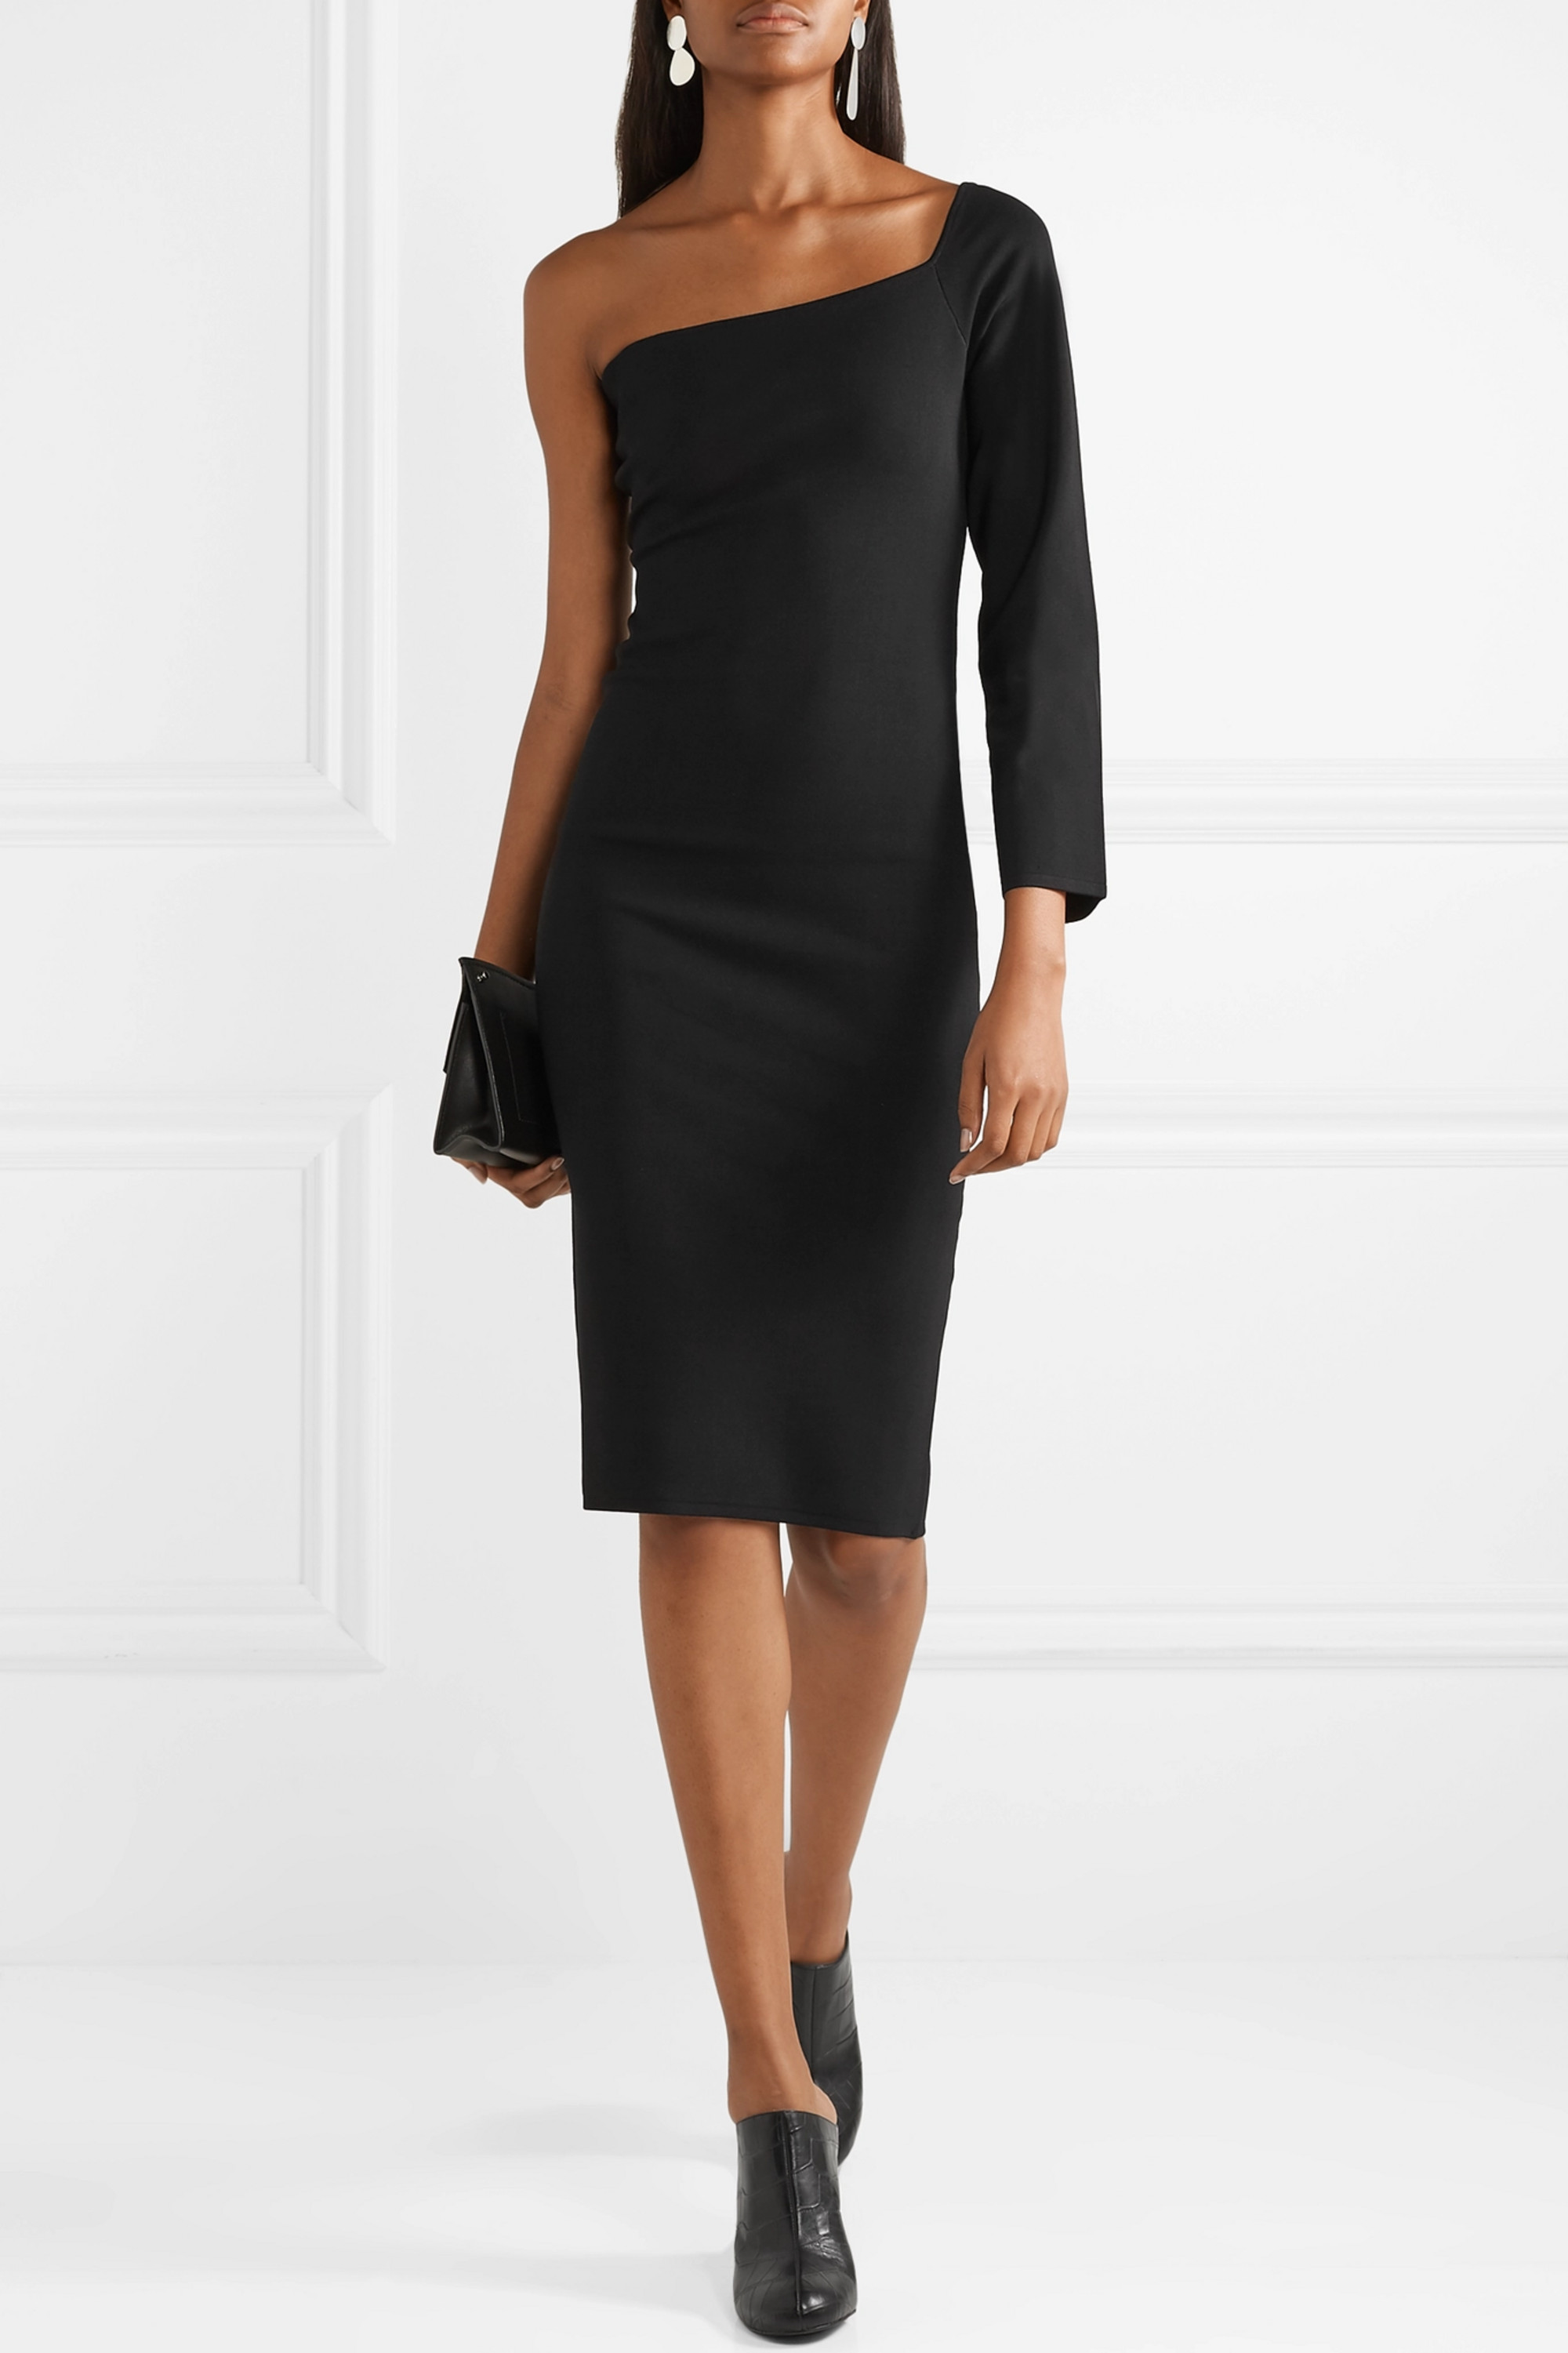 Solace London The Fiorella one-shoulder stretch-knit dress